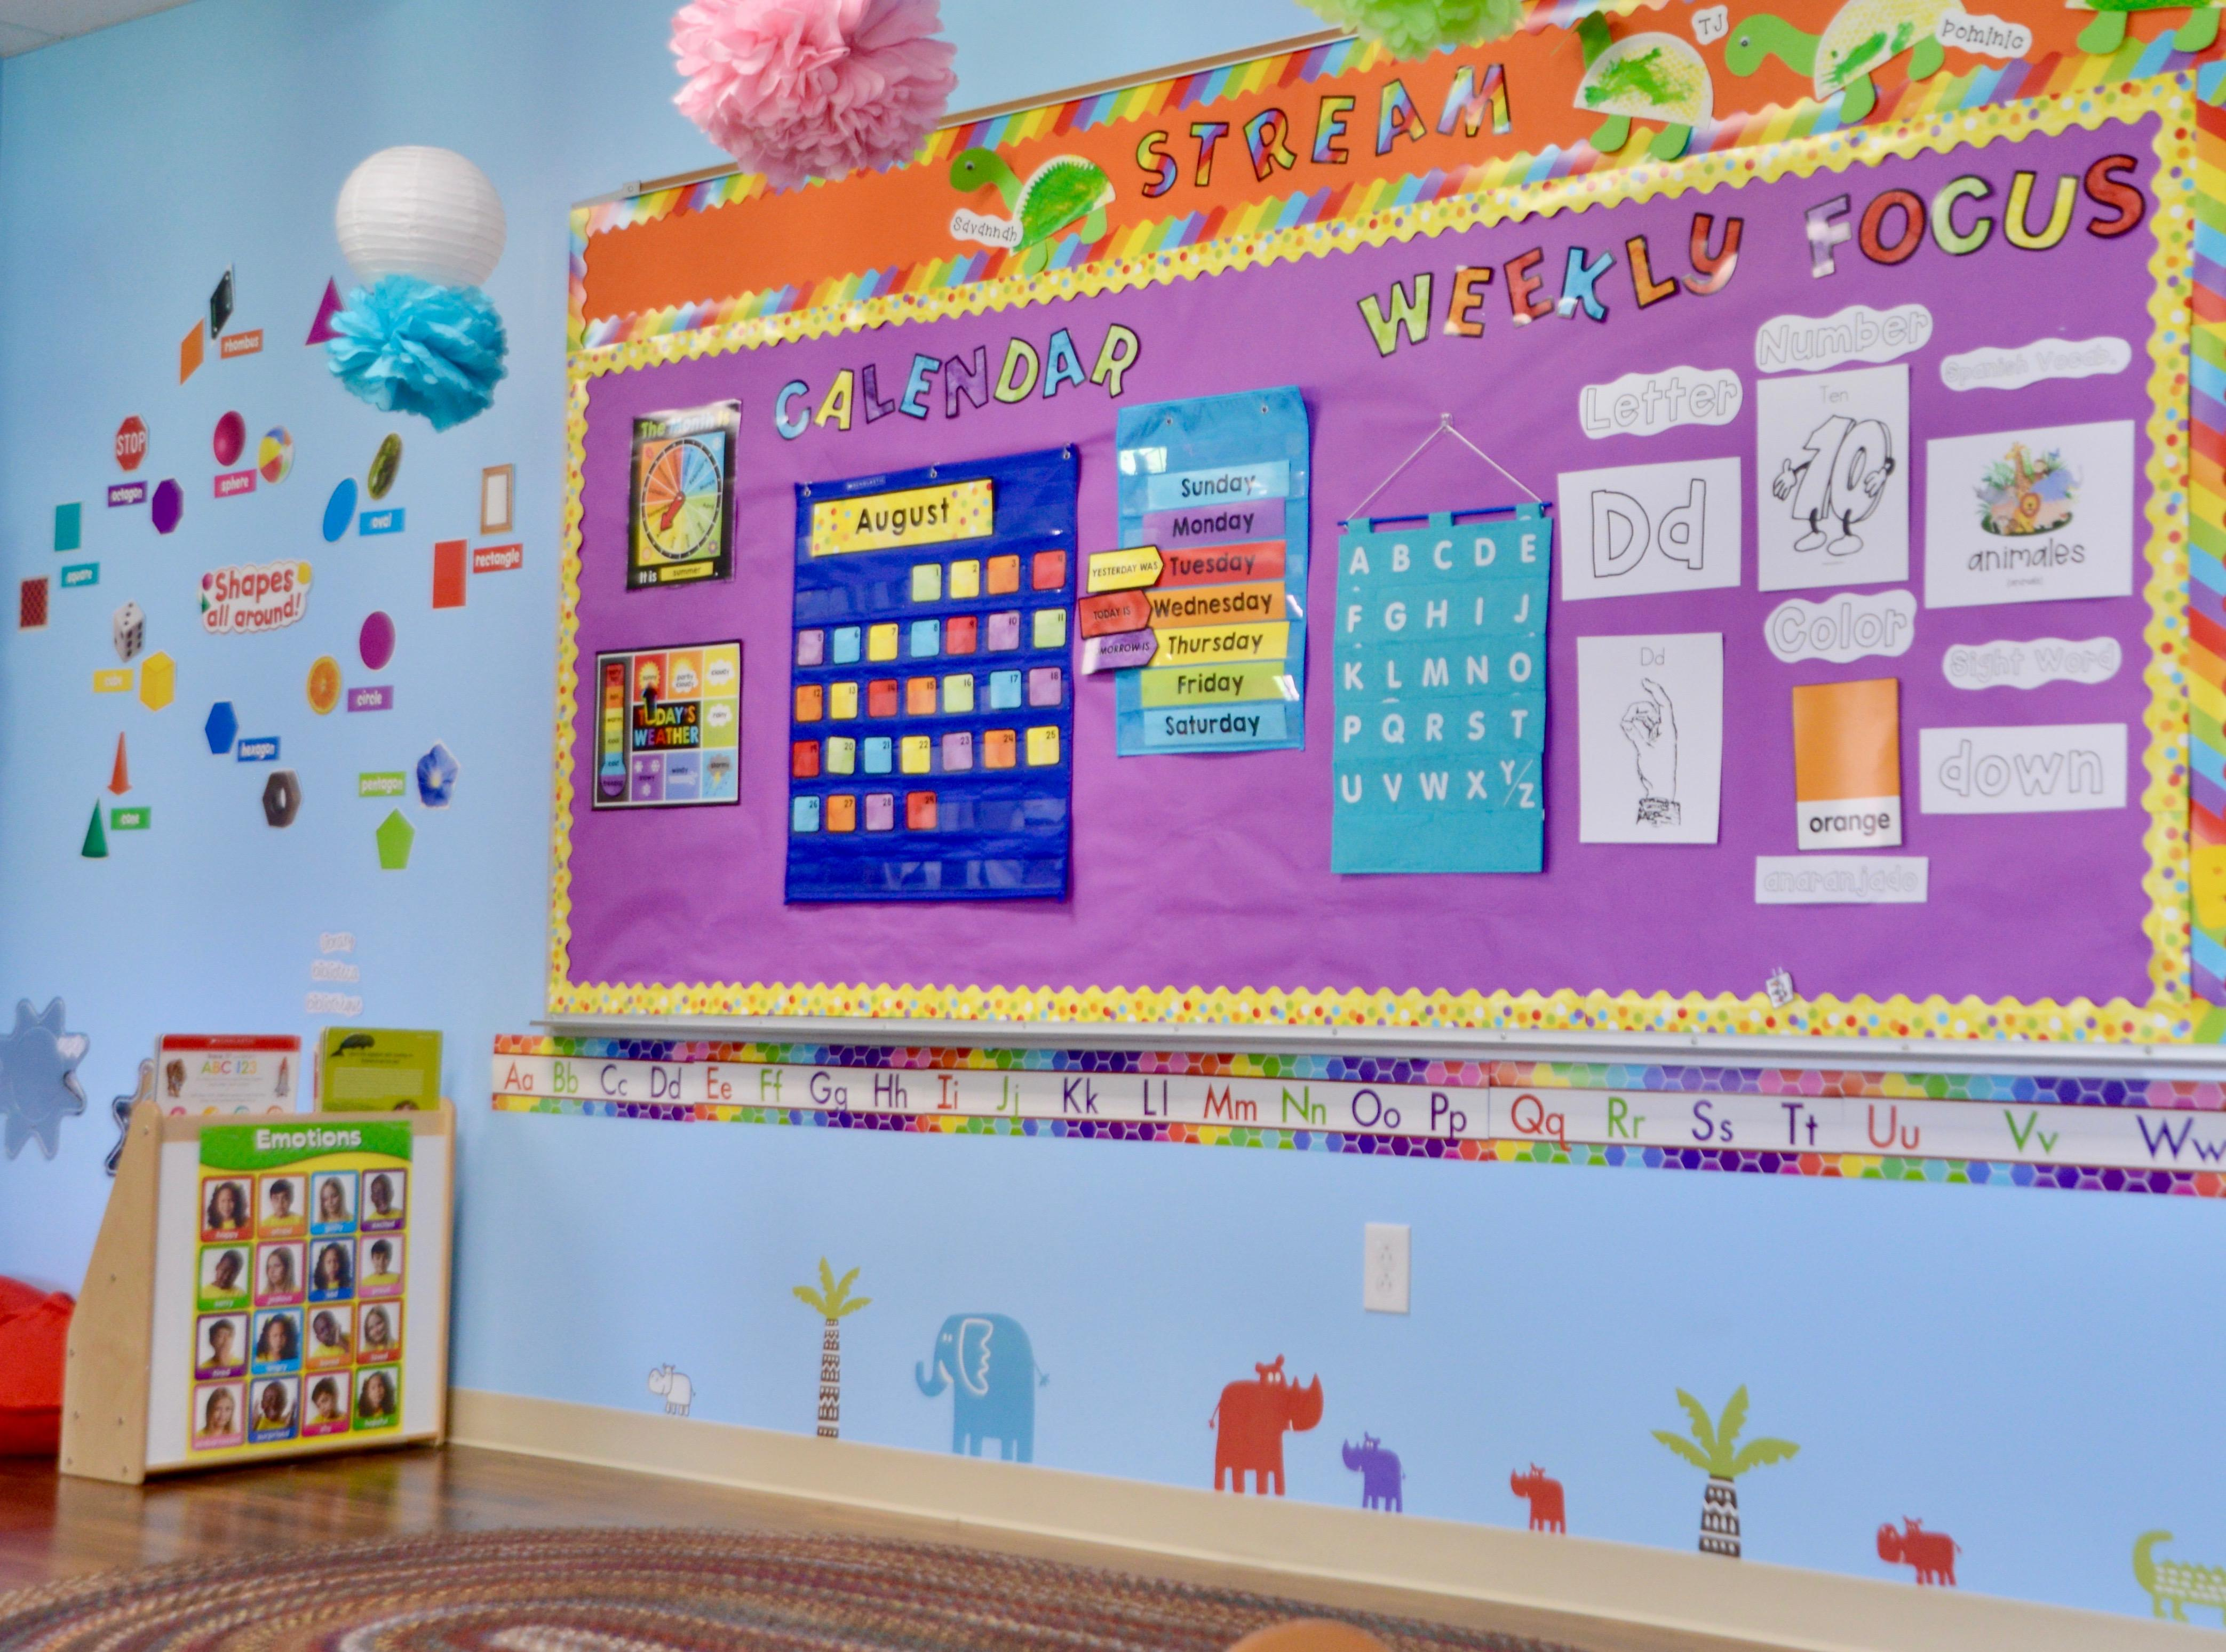 Older Toddler Room image